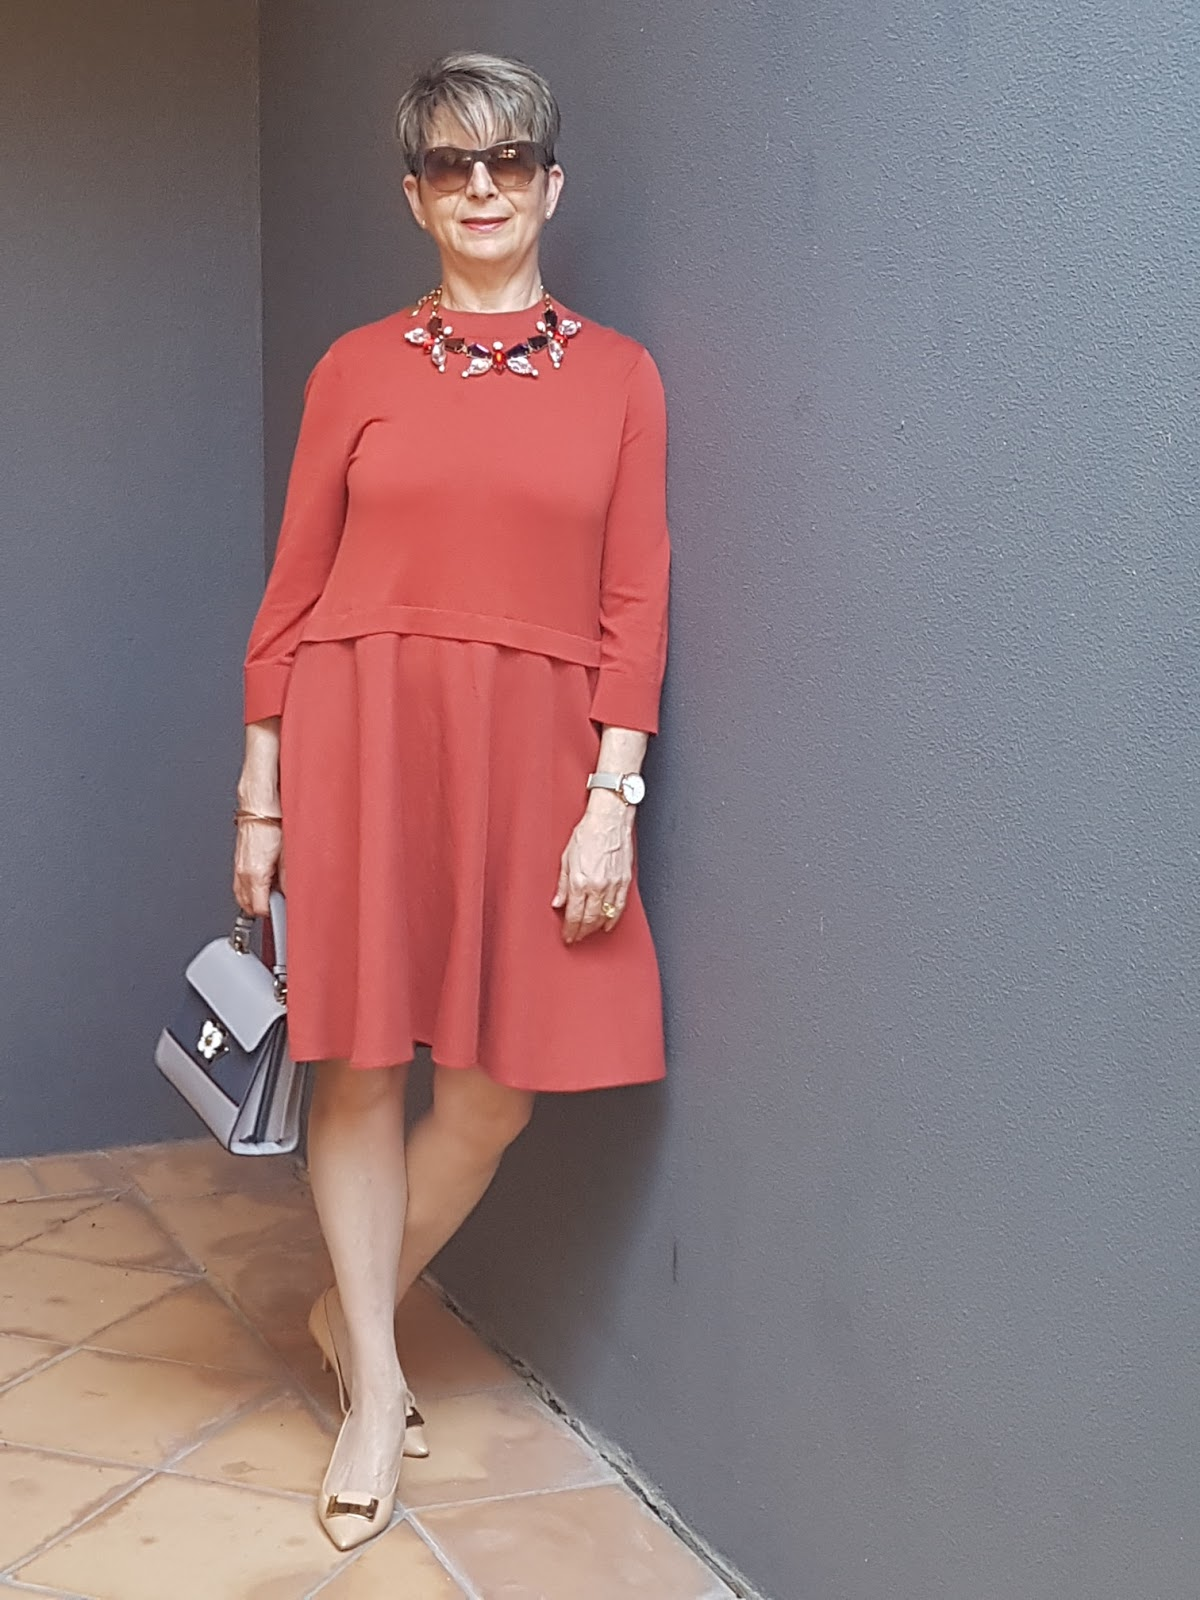 Looking Fabulous @ Fifty: A TRANSITIONAL DRESS